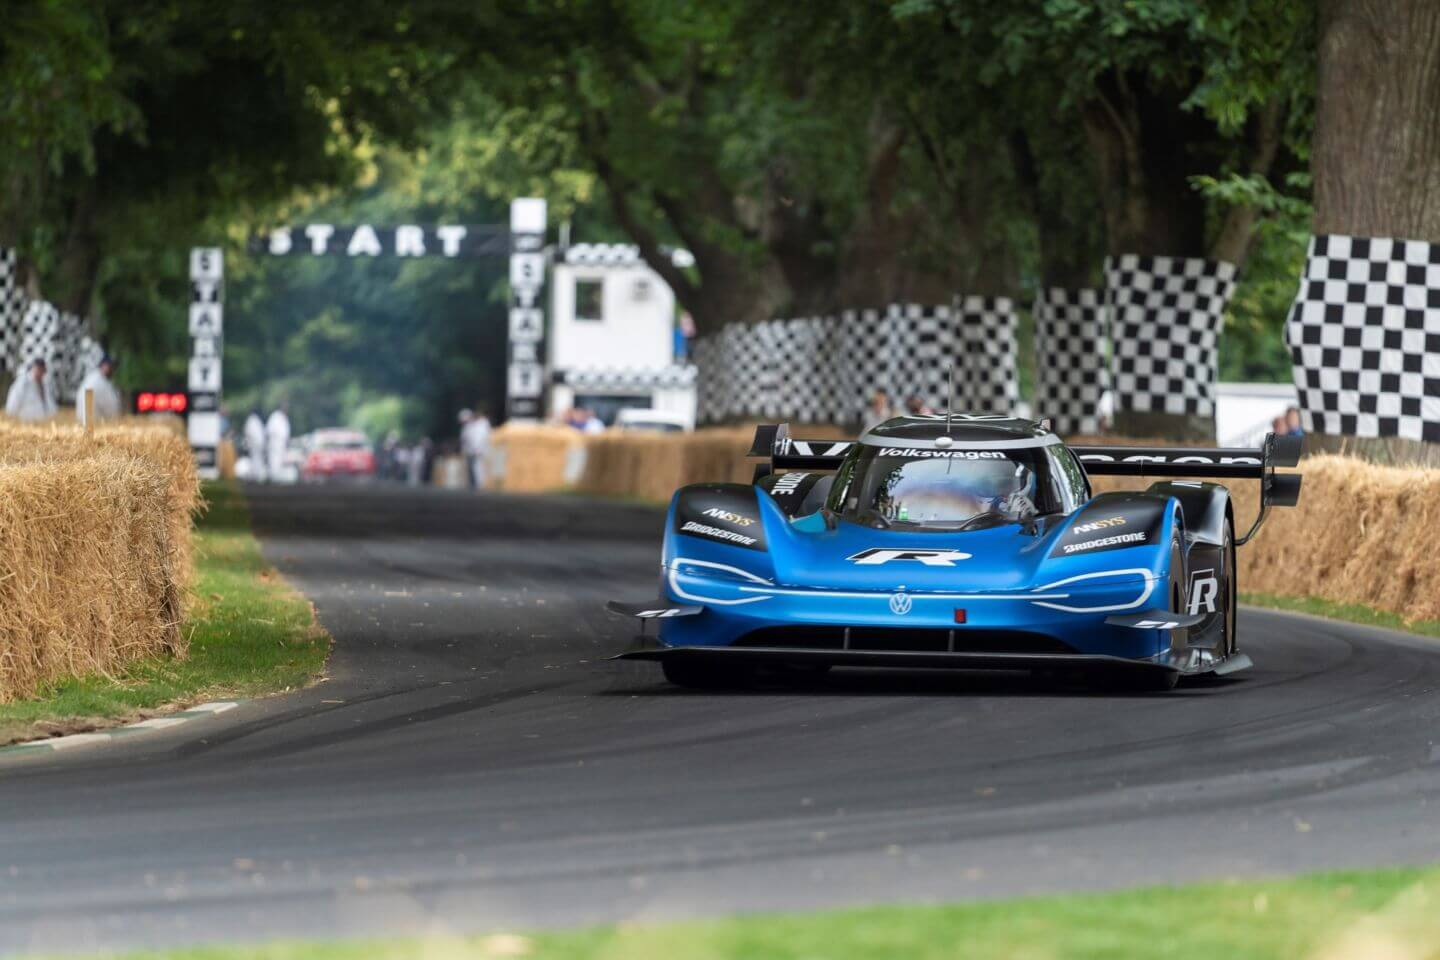 Volkswagen's electric car smashes 20-year-old Goodwood Festival of Speed record